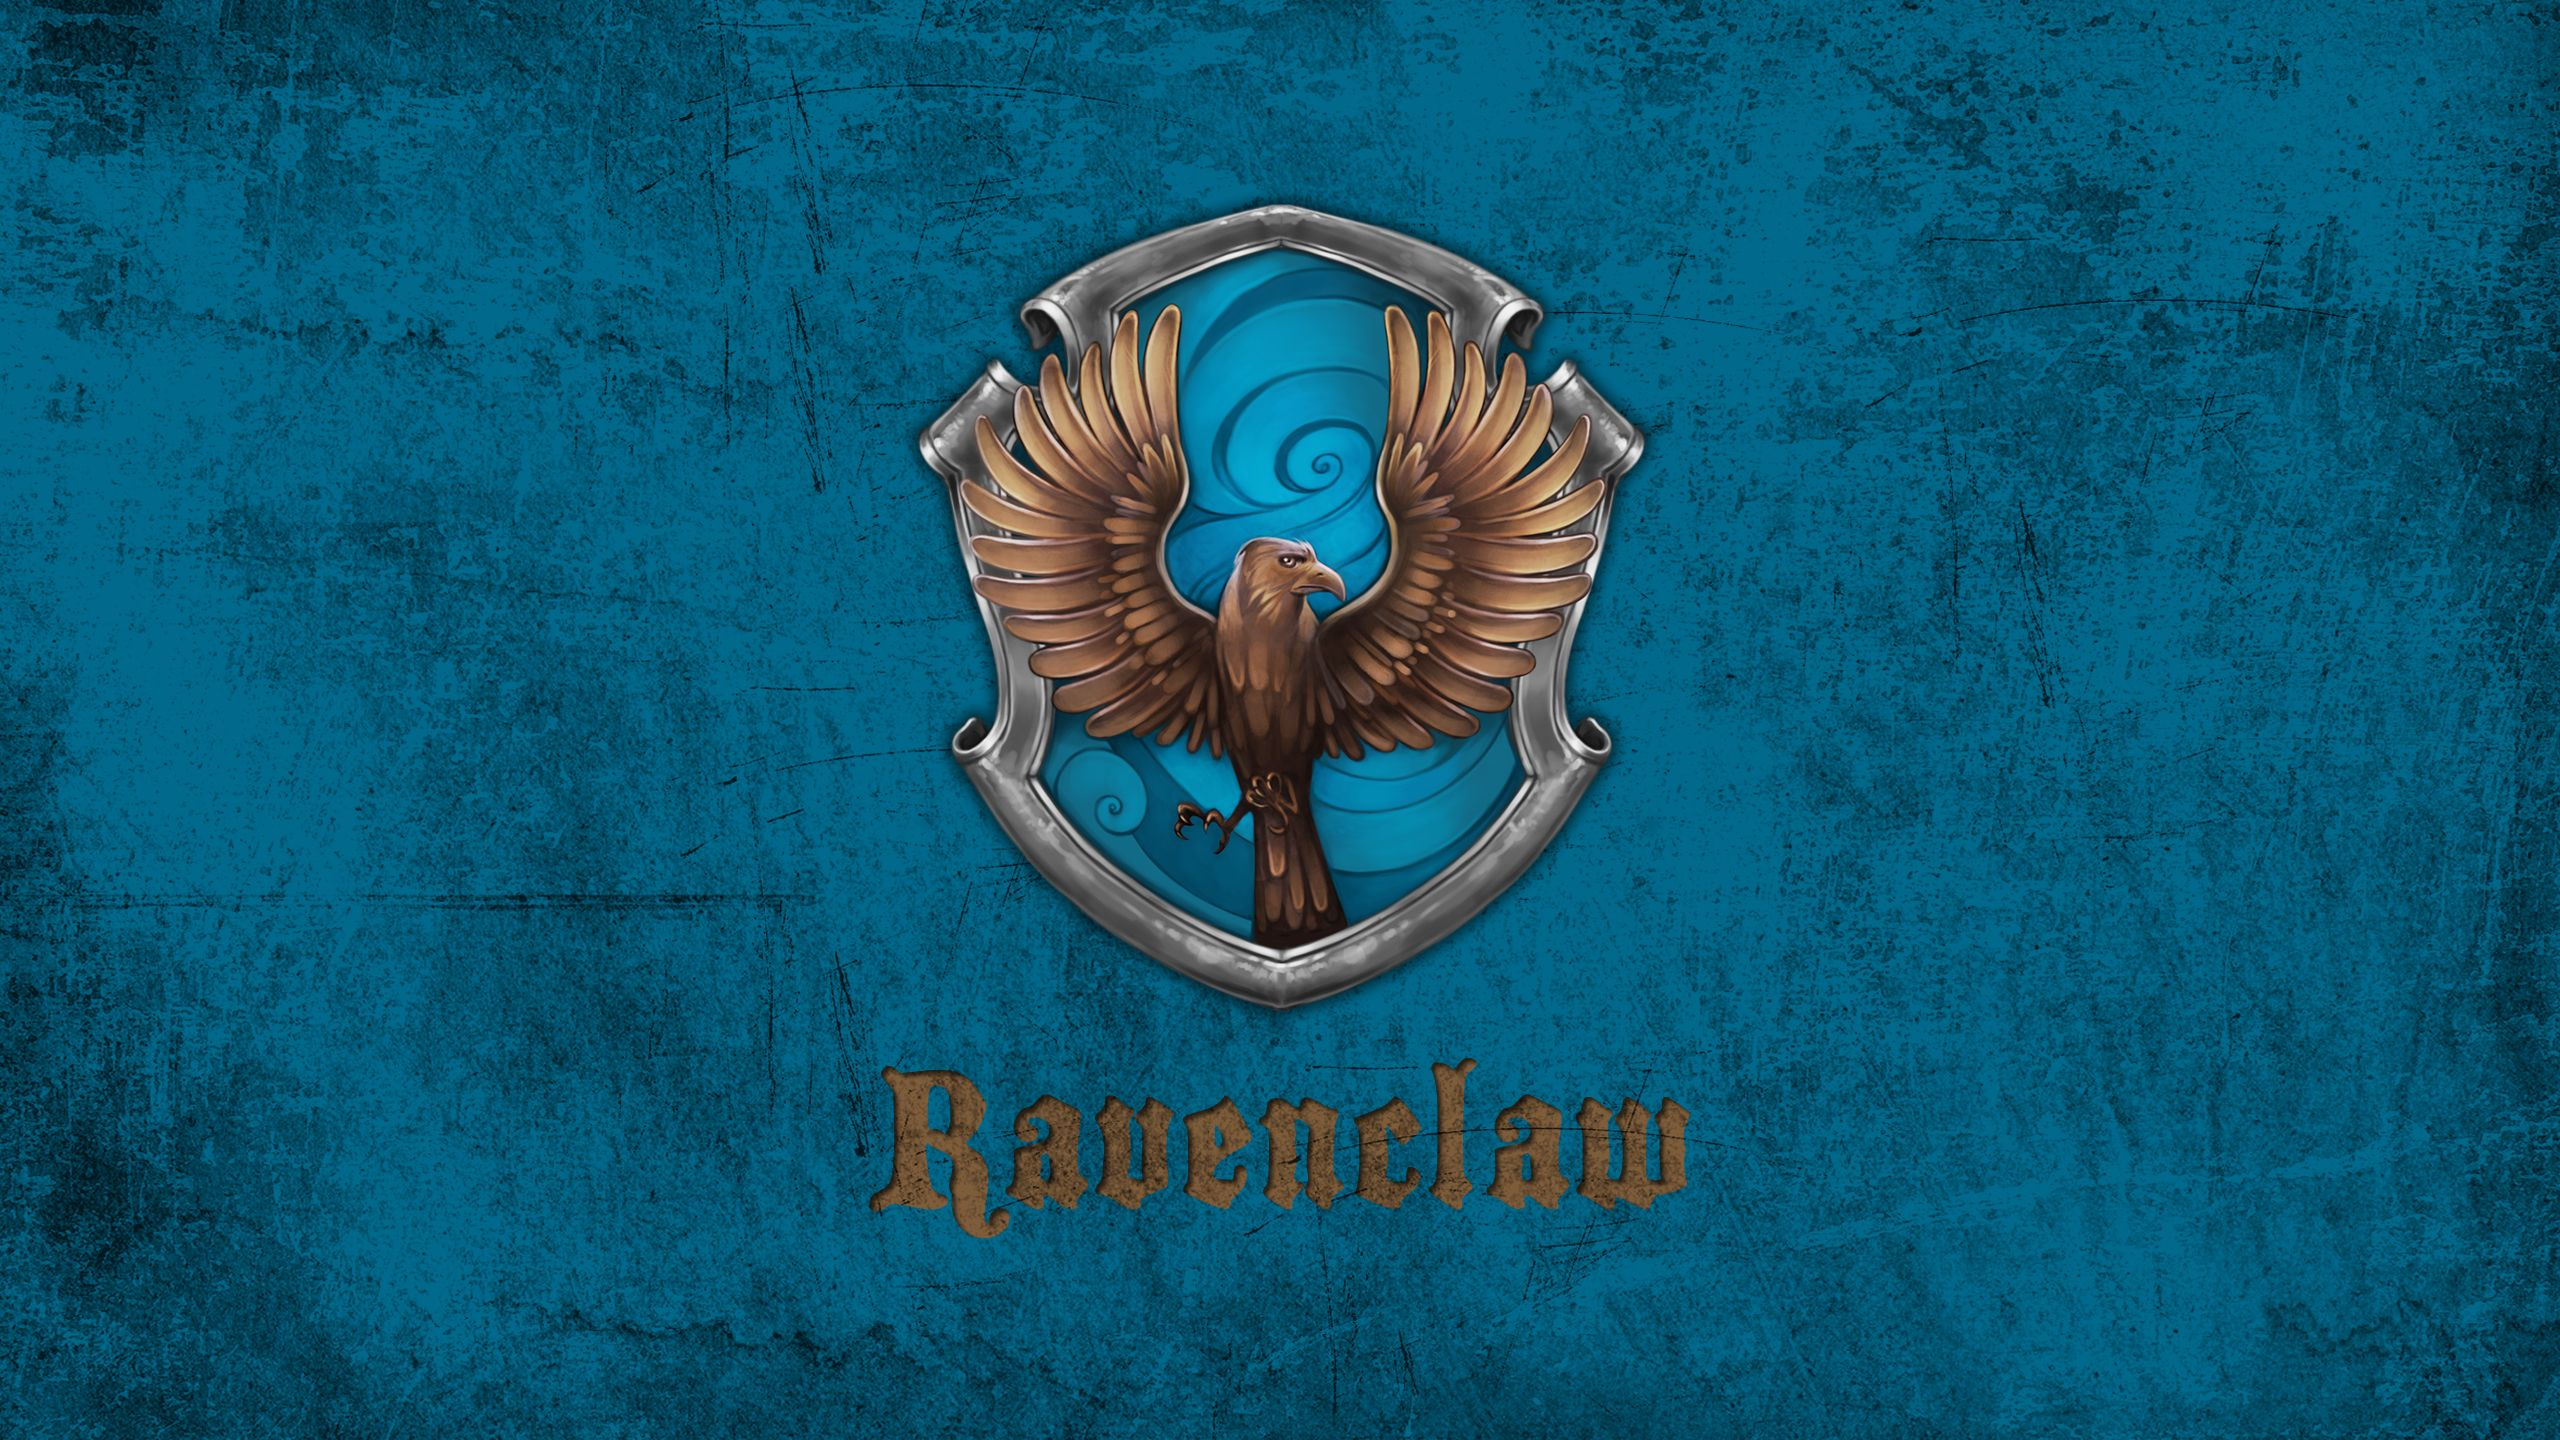 Harry Potter Wallpapers Hd: Harry Potter Wallpapers, Pictures, Images